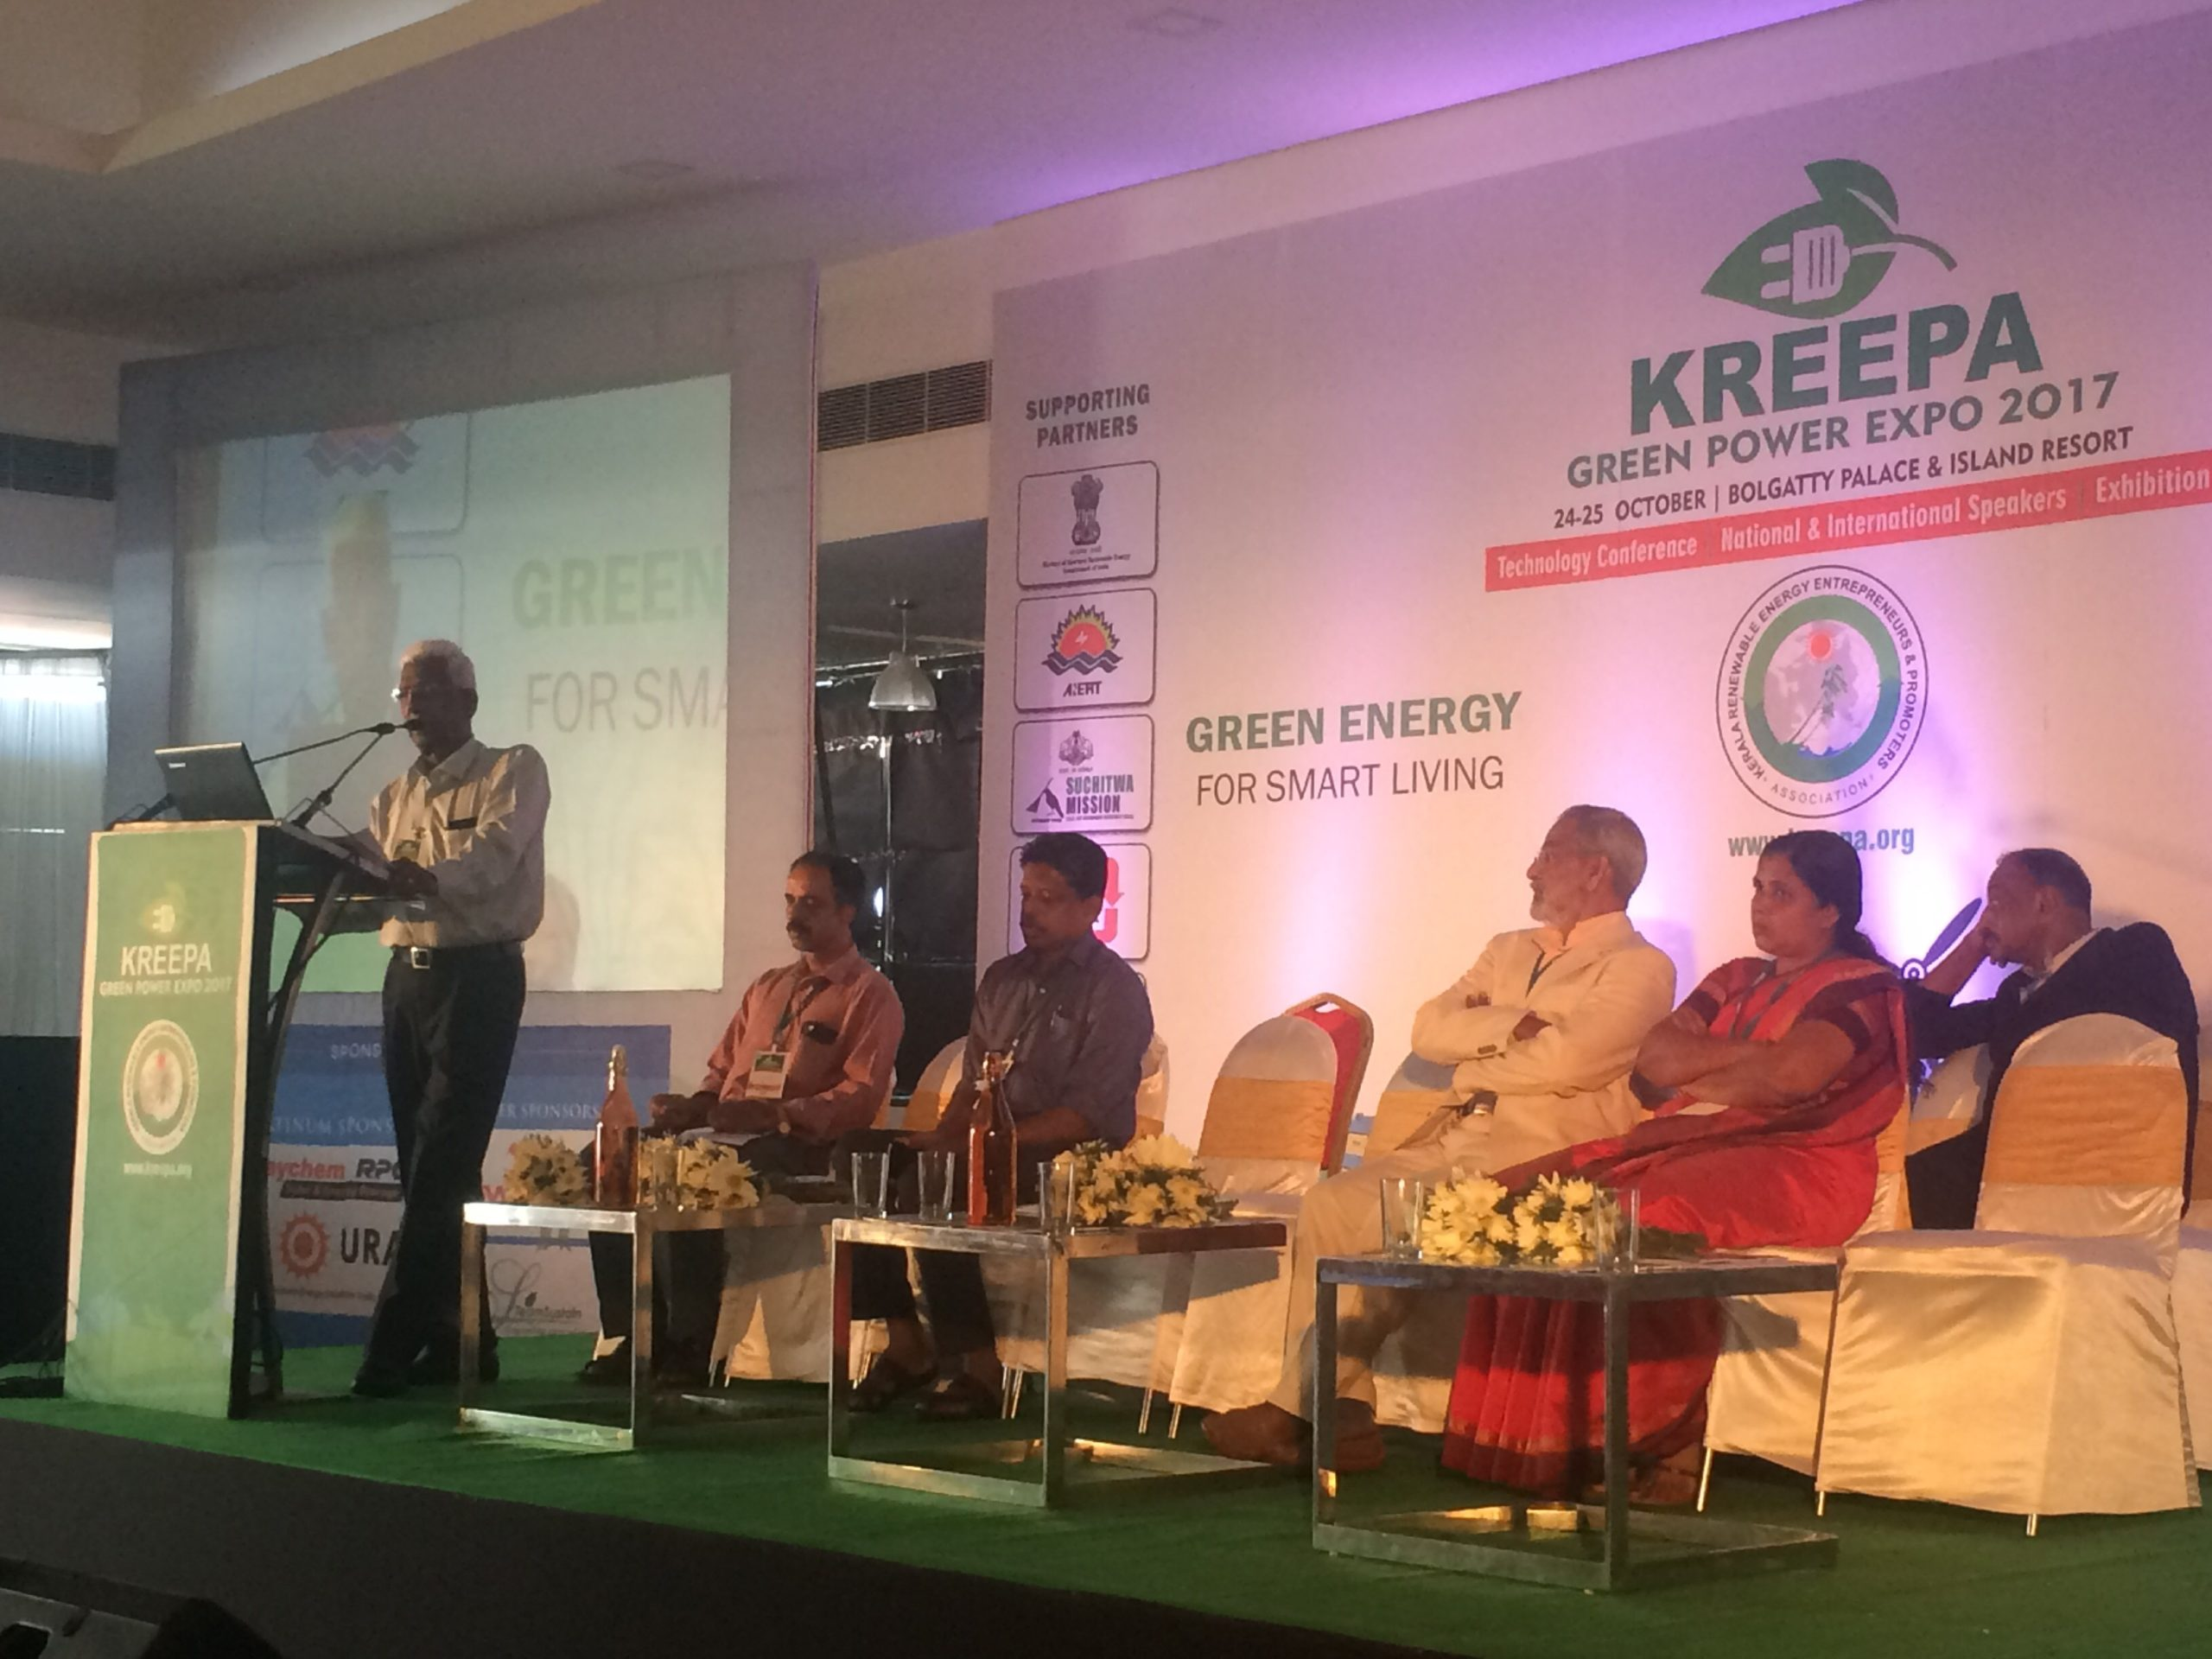 As Kerala was India's first fully electrified state, KREEPA feels that it should aim to be the first state to become fully green powered. Credit: Tom Kenning